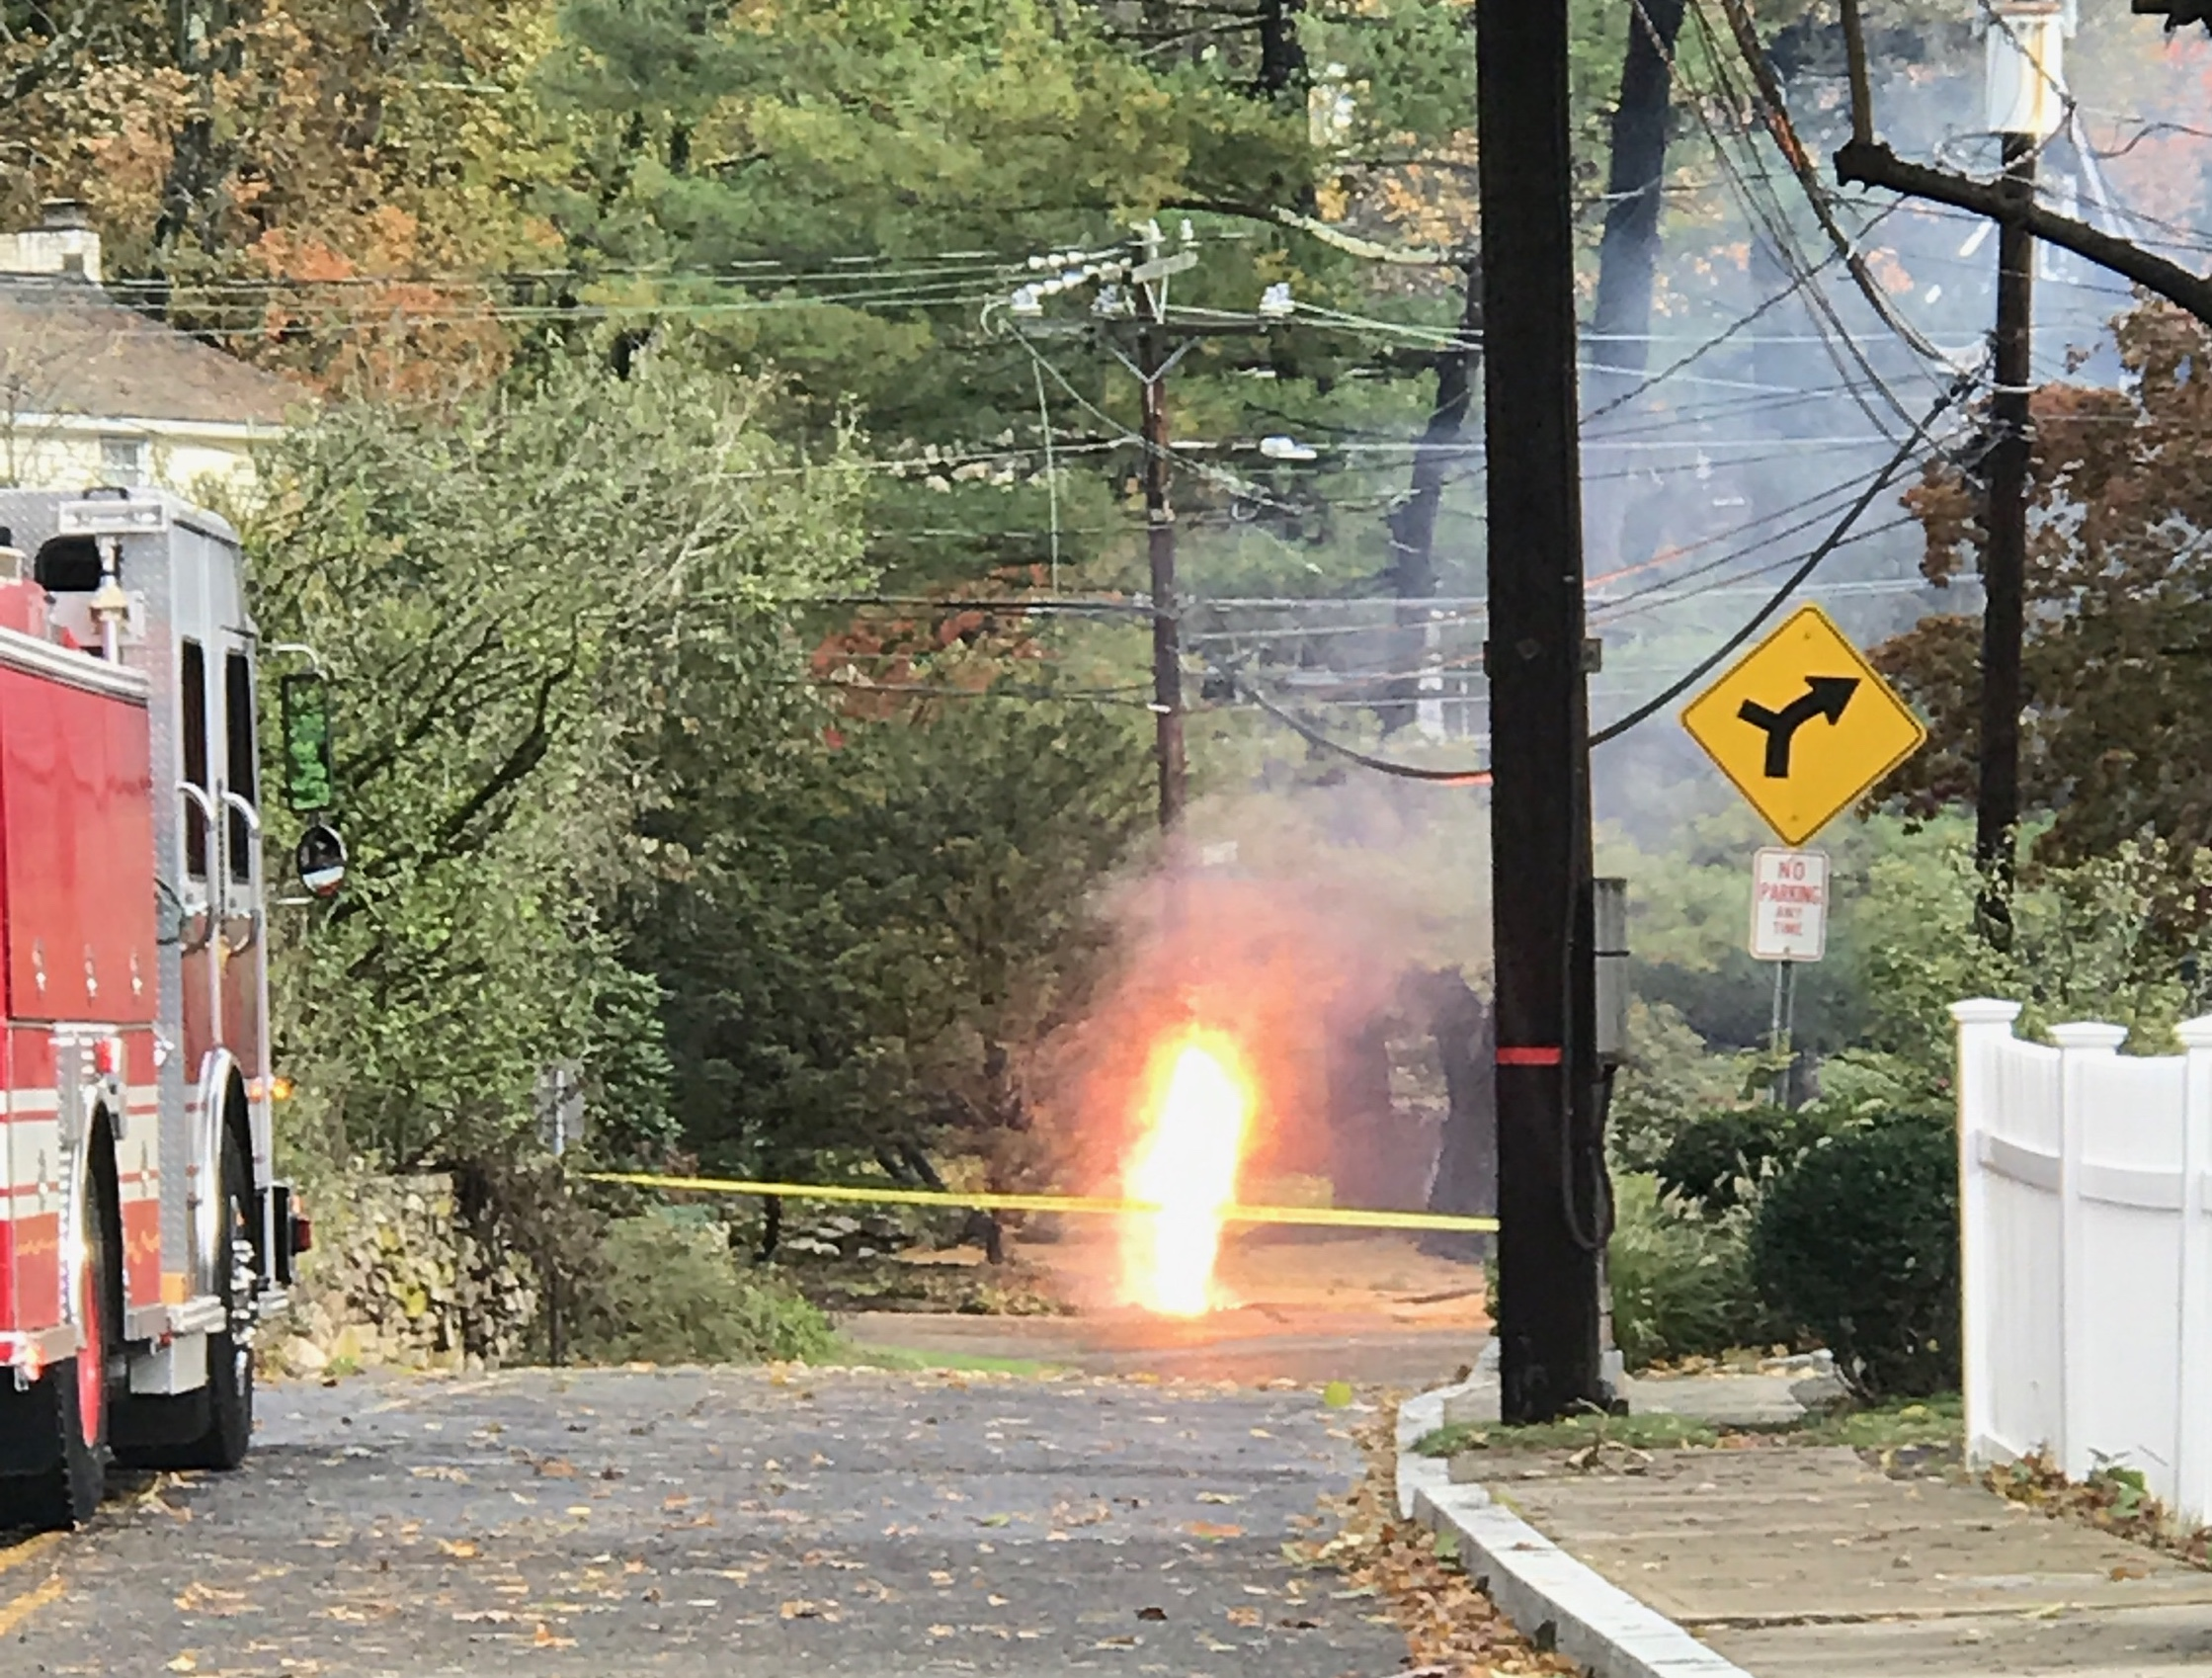 Percent of New Canaan Homes Remain without Power [UPDATING]